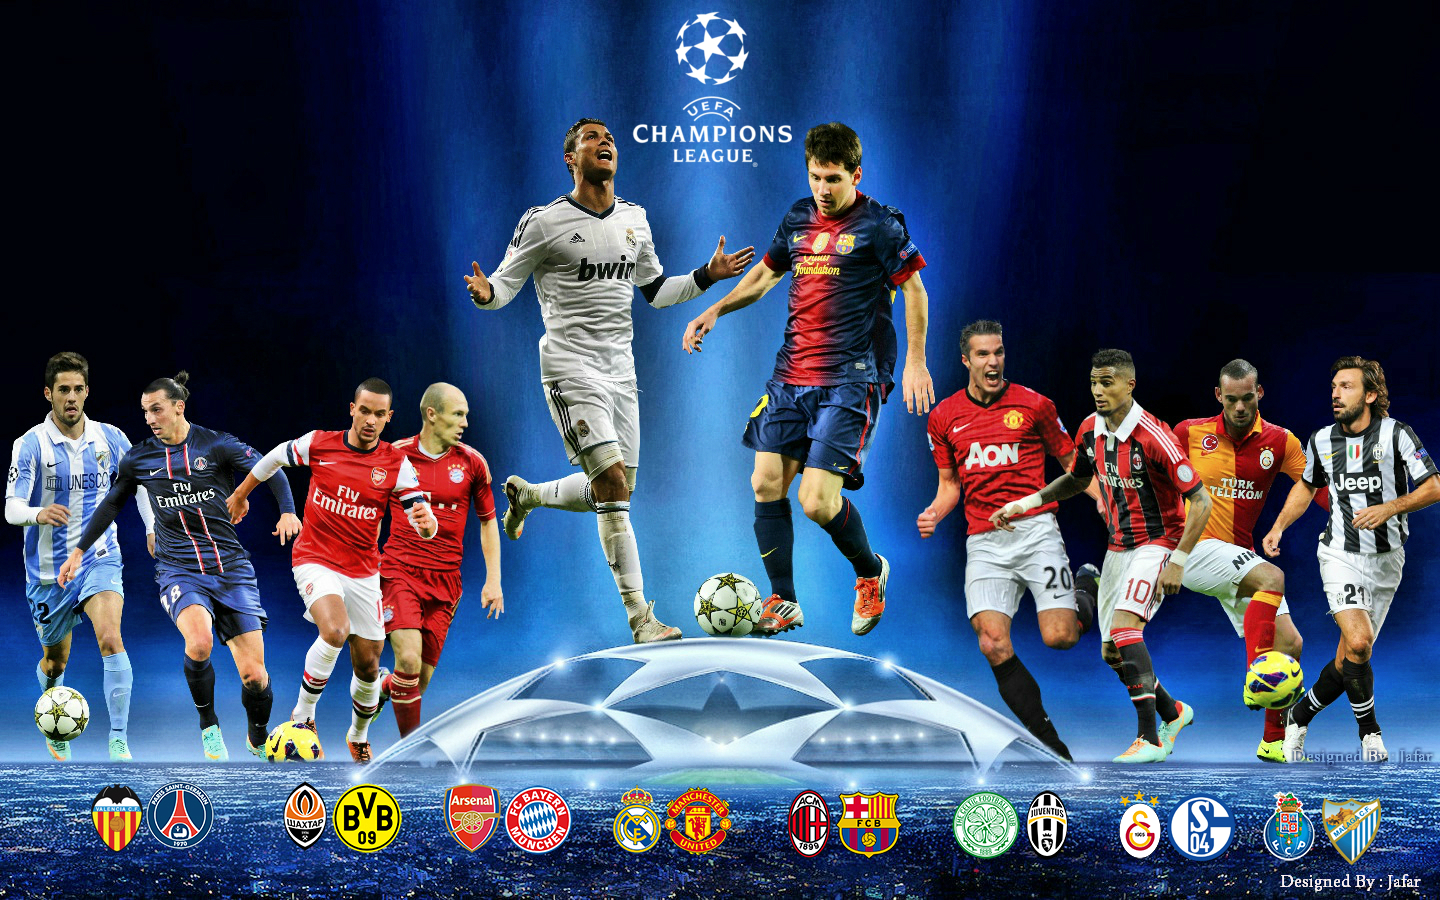 uefa champions league wallpapers 2013 wallpaper   ForWallpapercom 1440x900